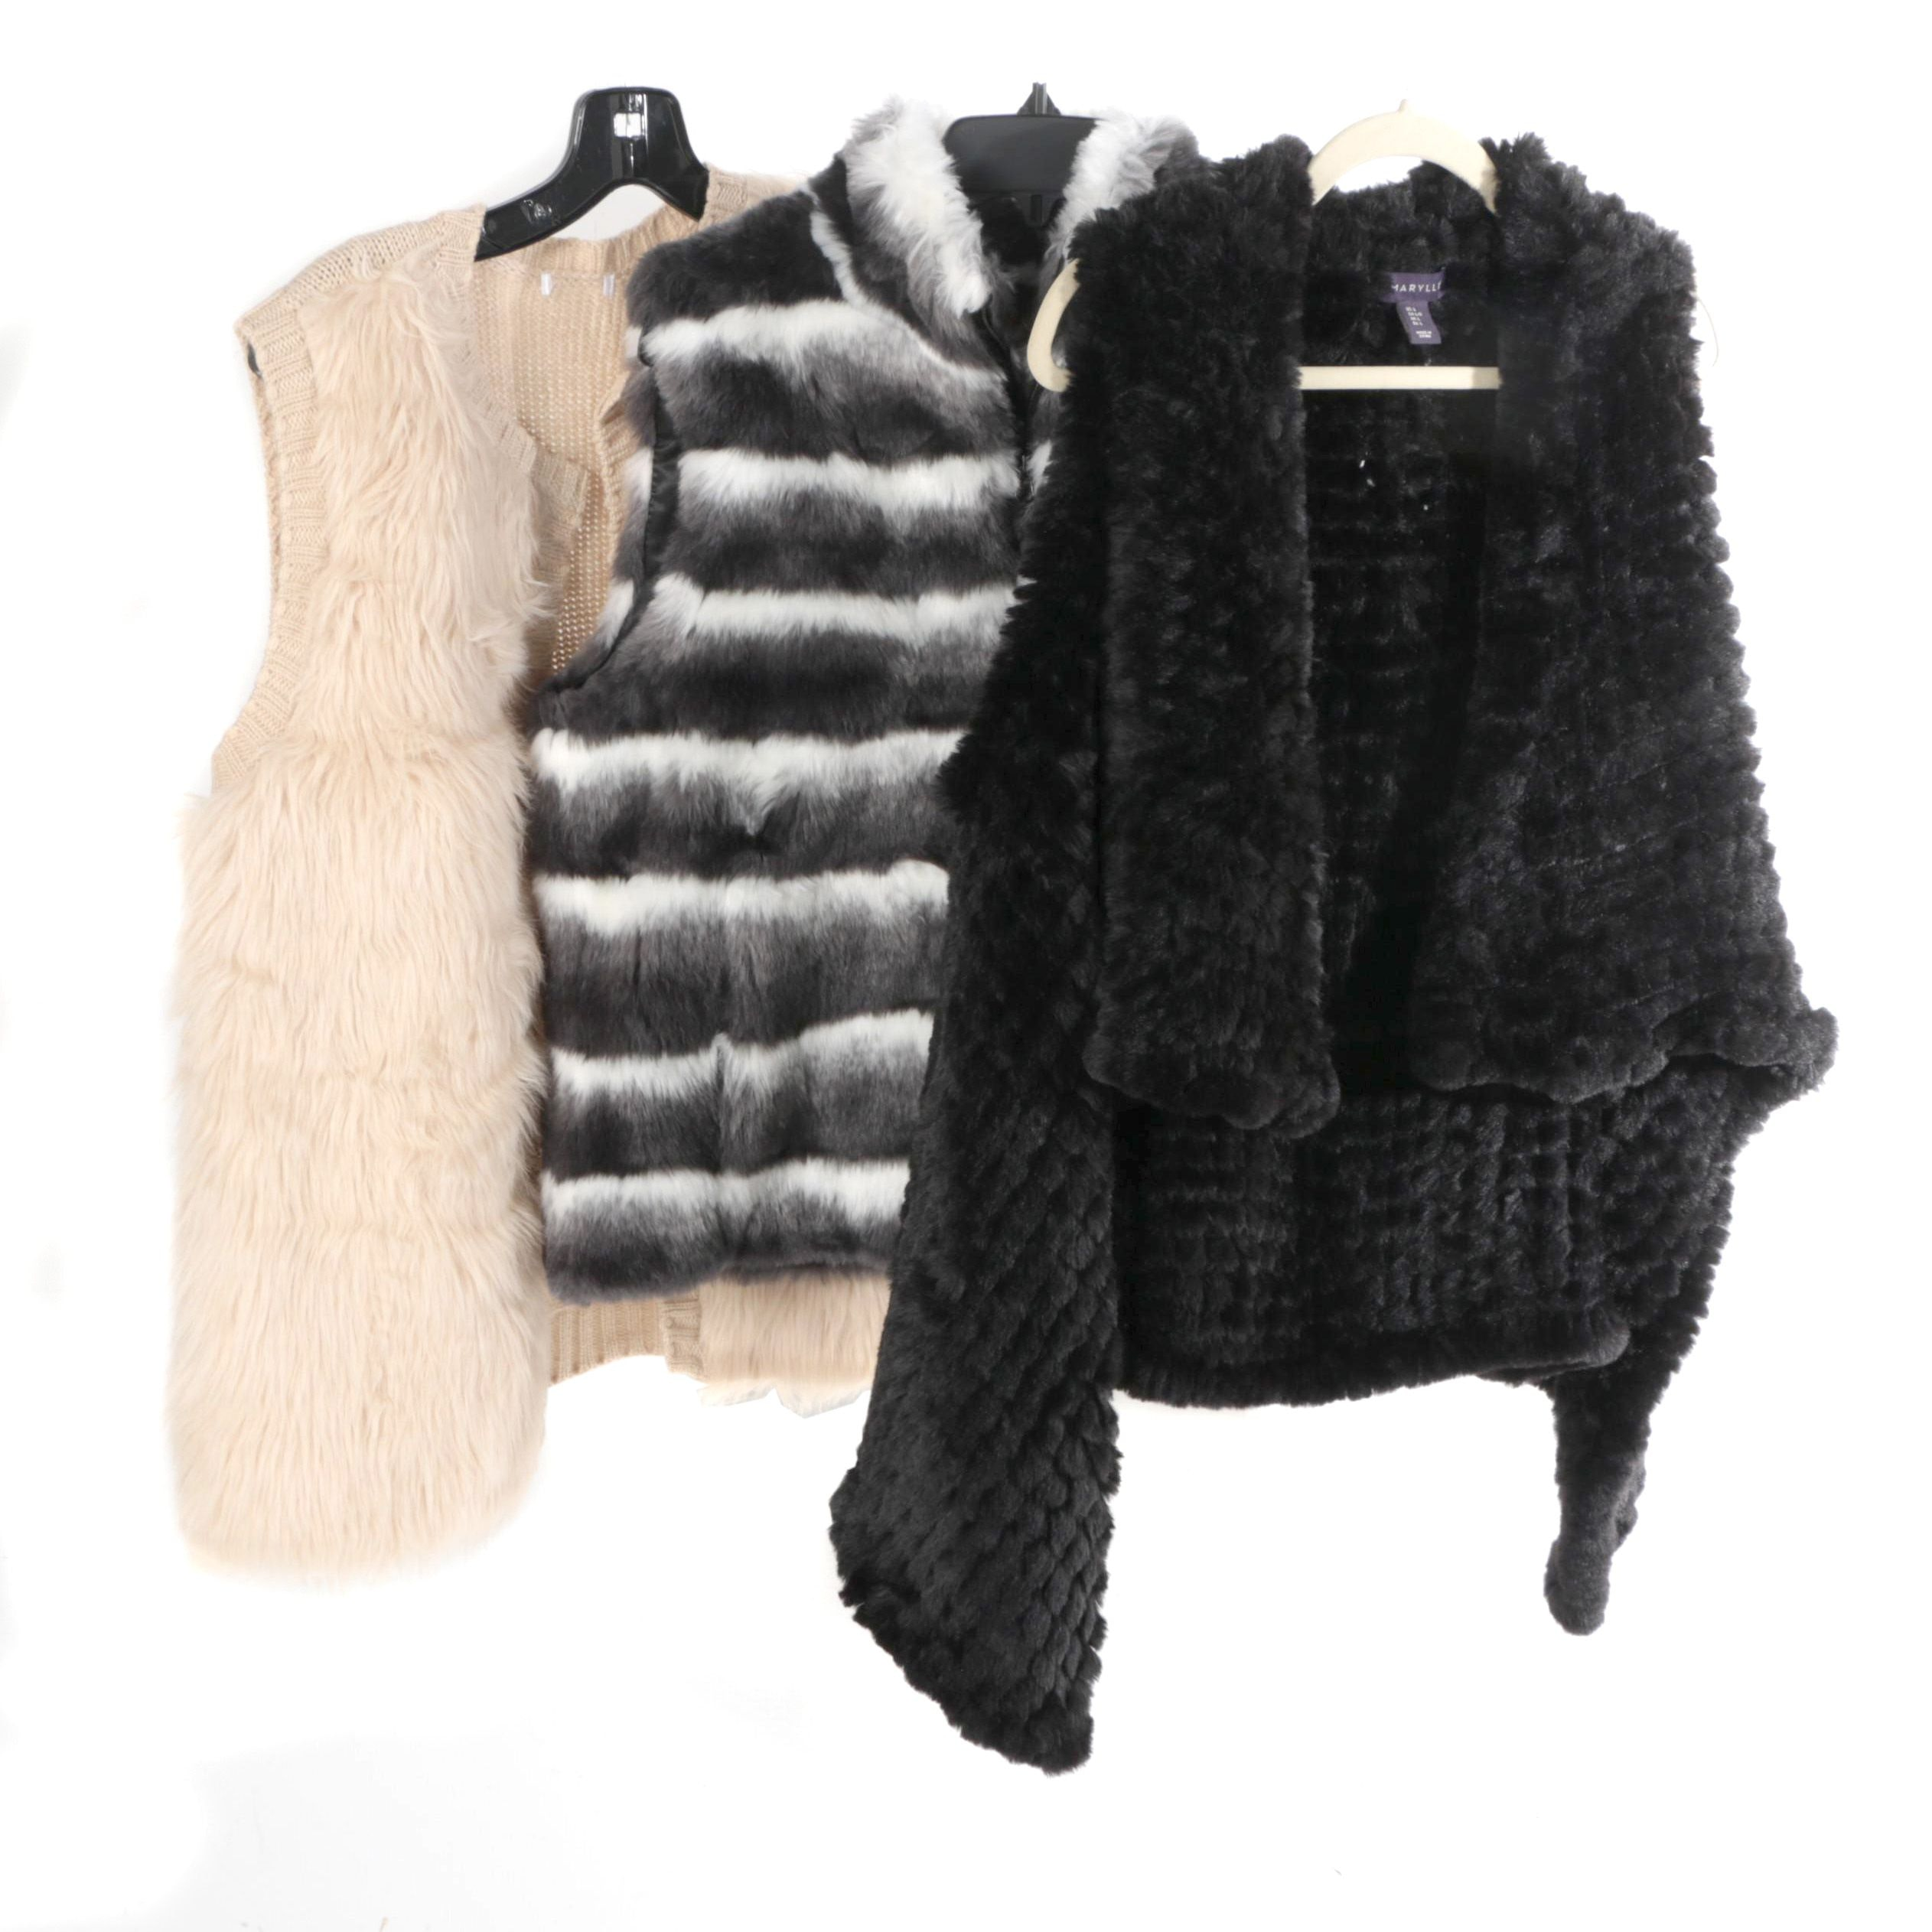 Women's Faux Fur Vests Including Annabelle New York